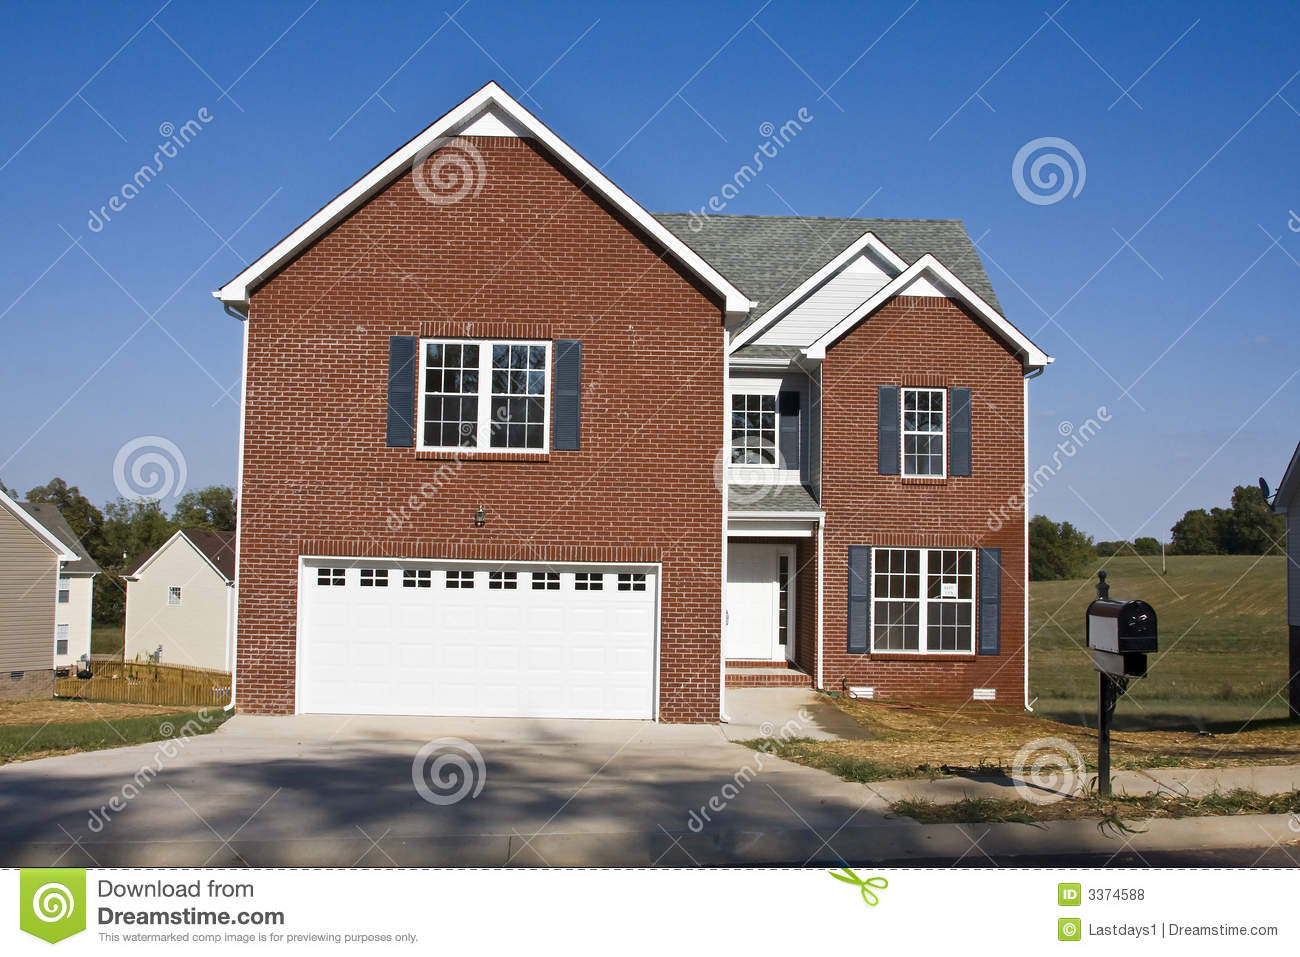 New homes for sale royalty free stock photos image 3374588 for New homes for sale